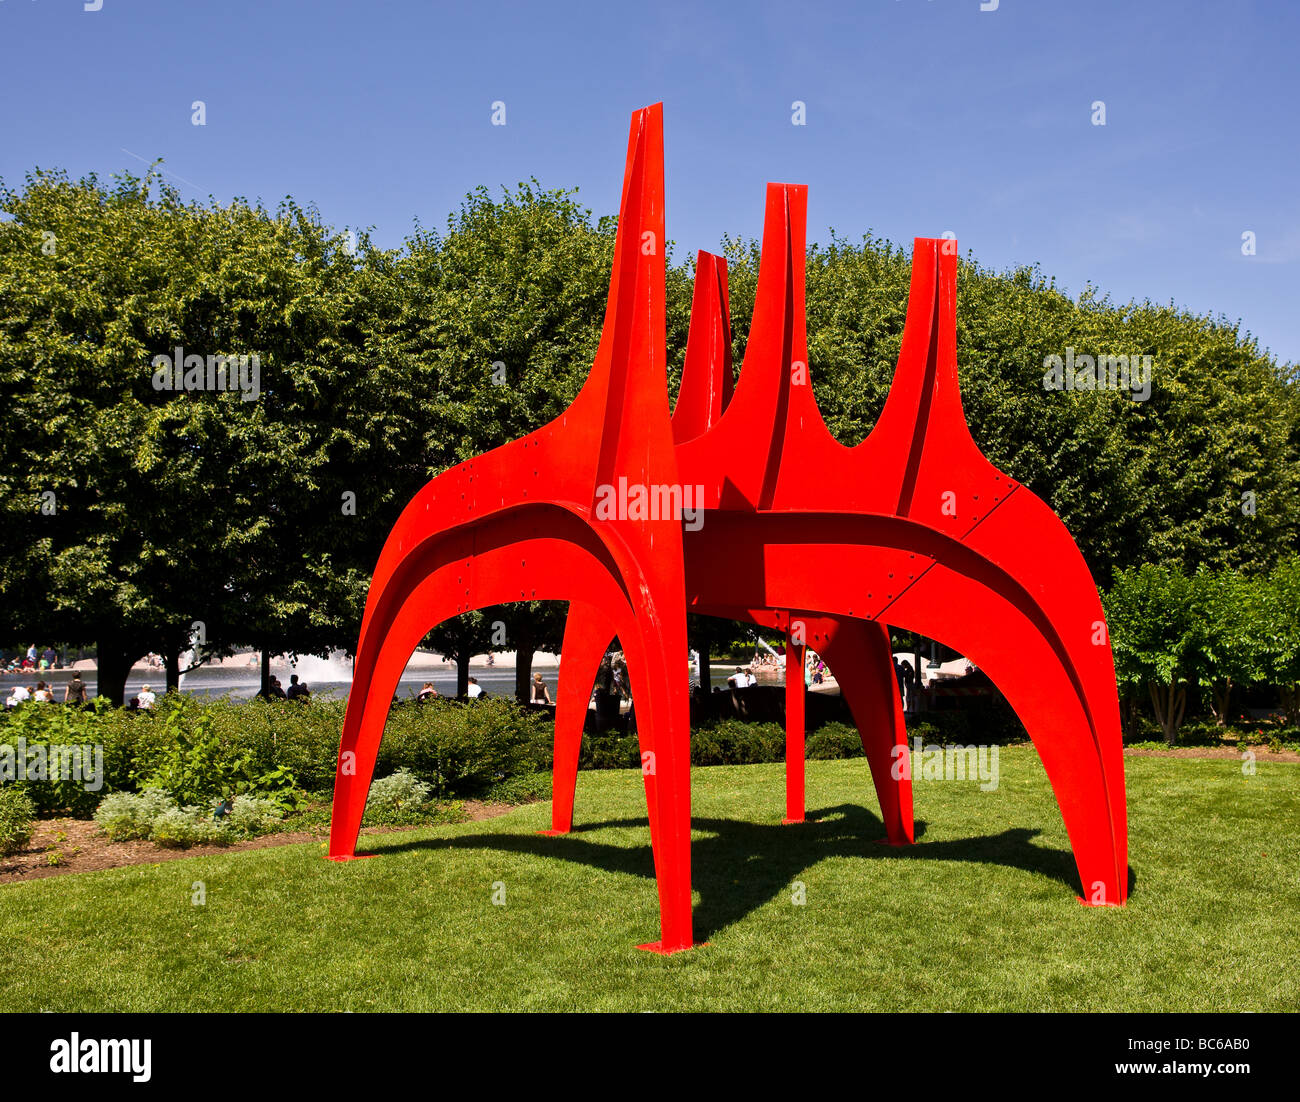 WASHINGTON DC USA Cheval Rouge sculpture by Alexander Calder in the National Gallery of Art Sculpture Garden - Stock Image